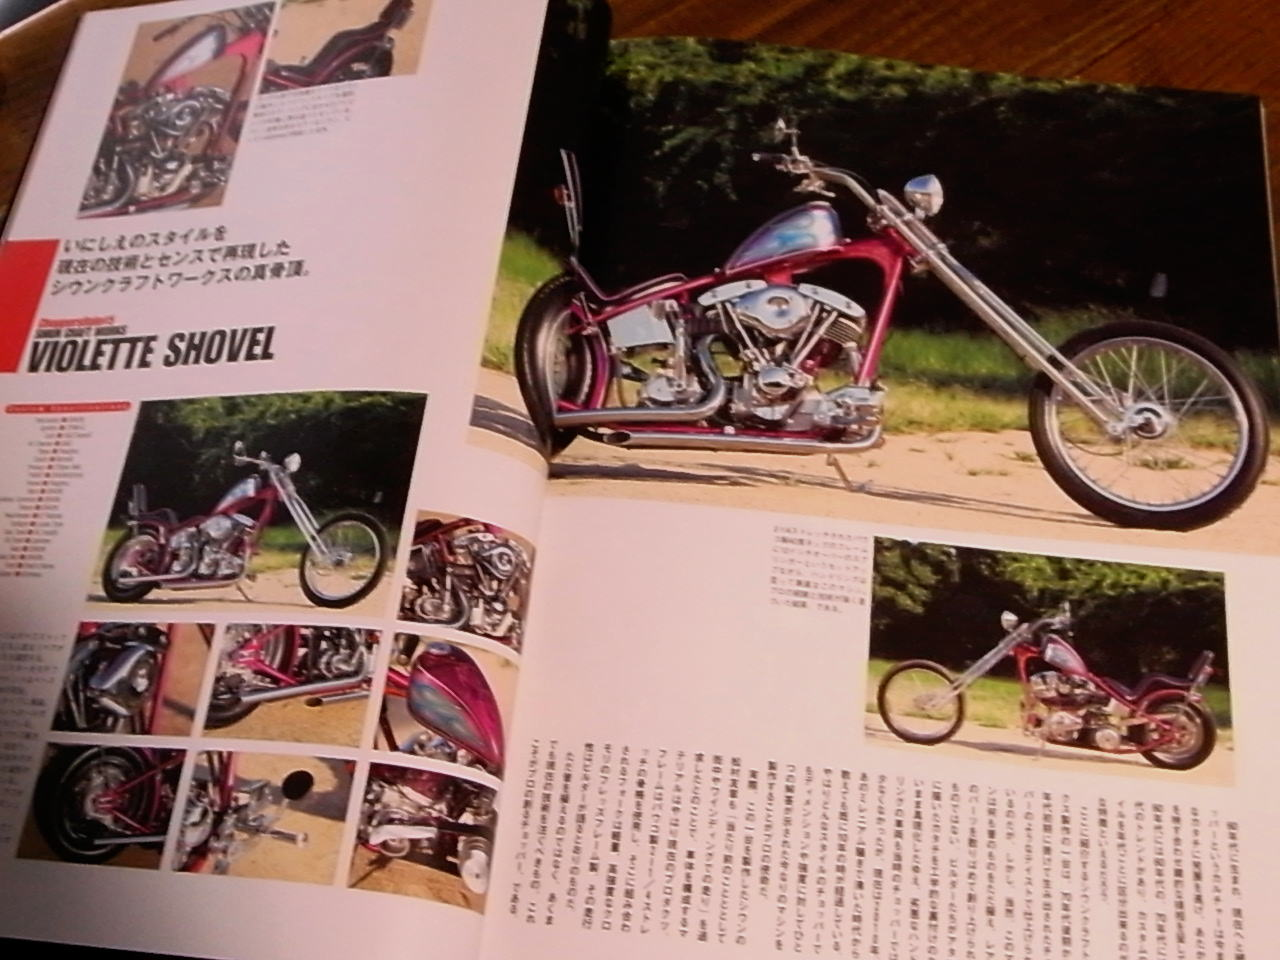 """ HARDCORE CHOPPER mag. \""_b0160319_2235141.jpg"